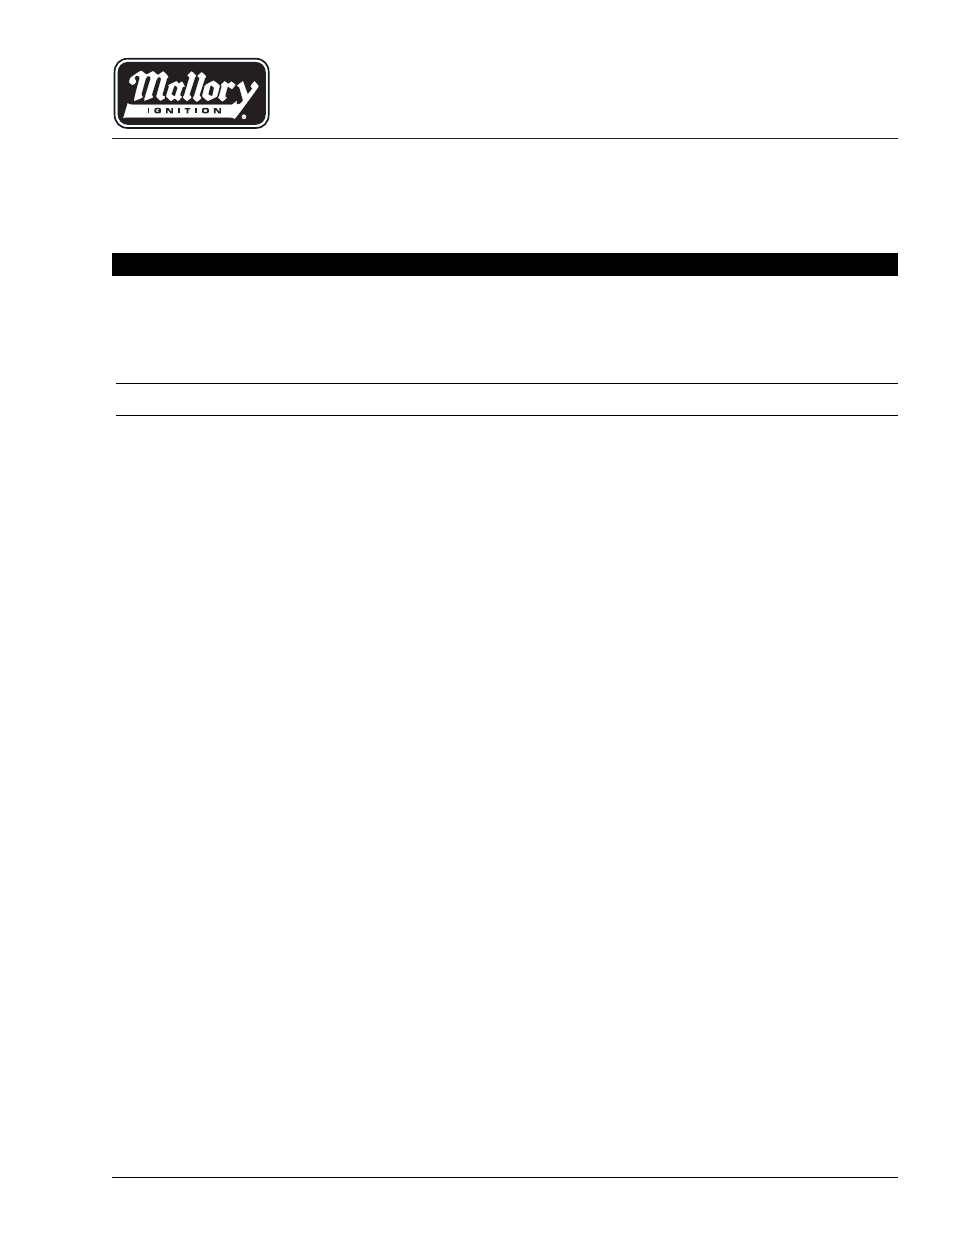 mallory ignition mallory unilite distributor page1 mallory ignition mallory unilite distributor user manual 13 mallory ignition wiring diagram at webbmarketing.co